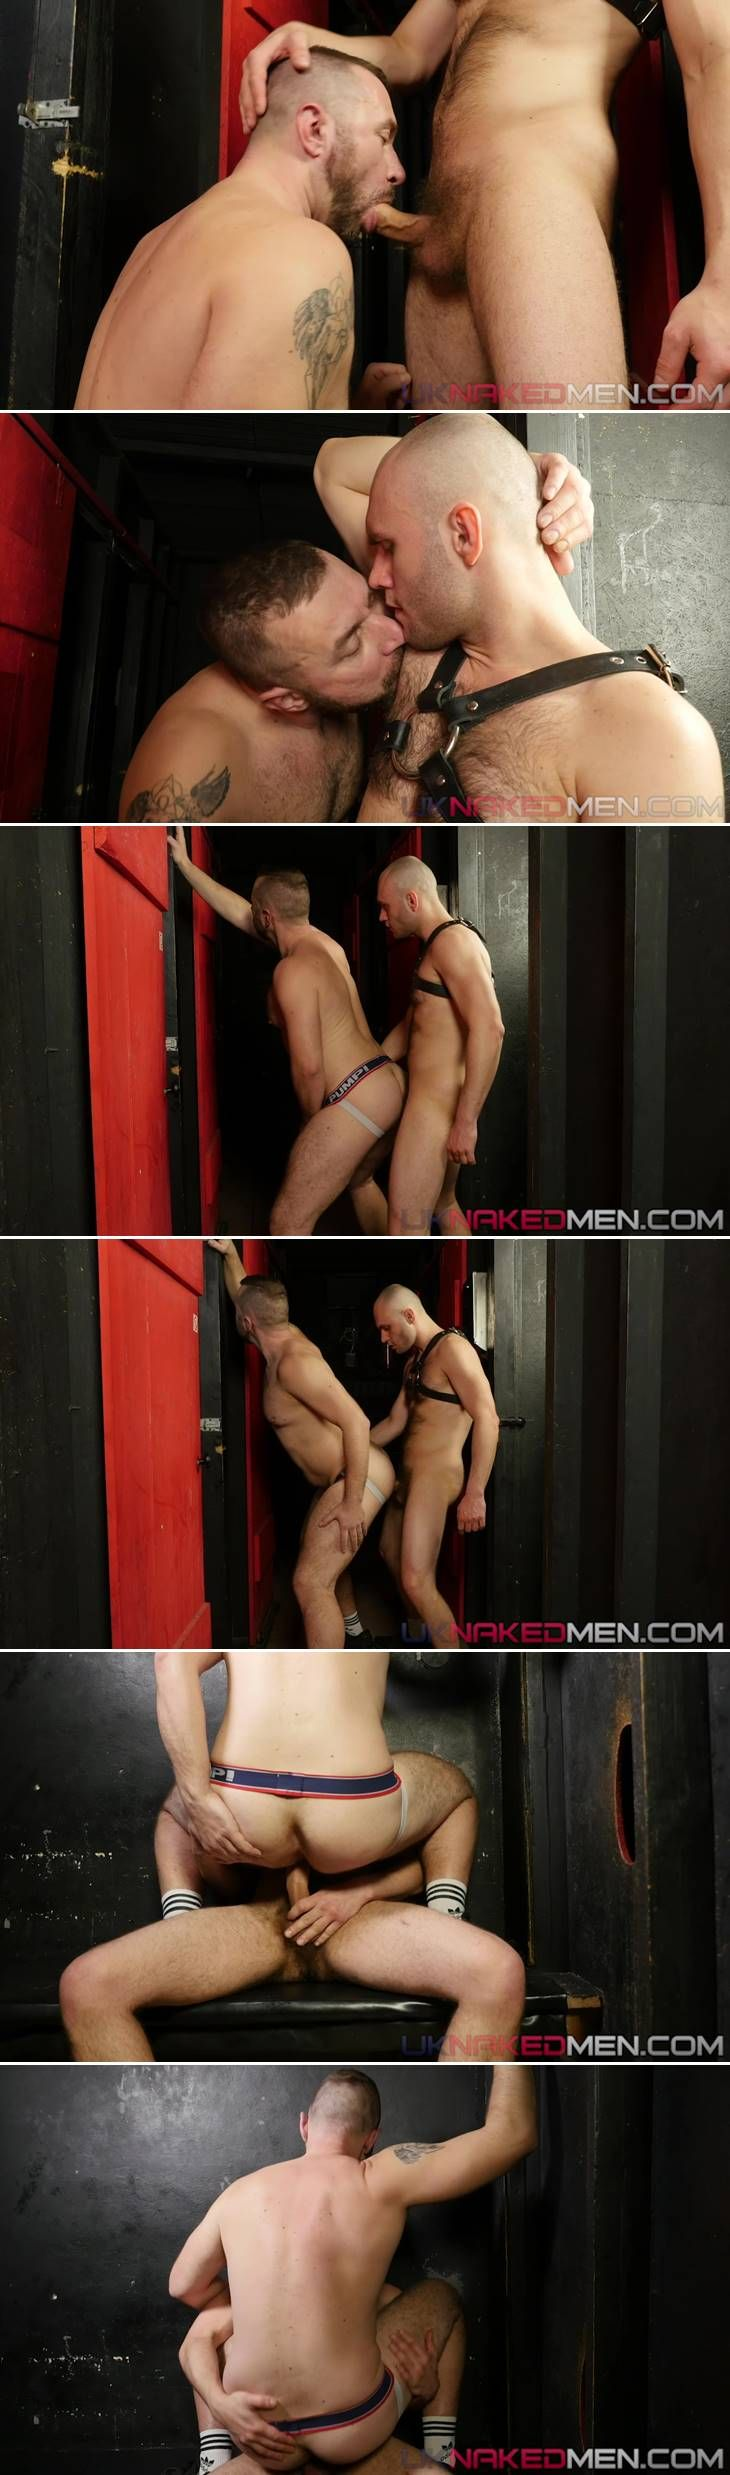 Donnie Marco & Adam Stahl - UK Naked Men